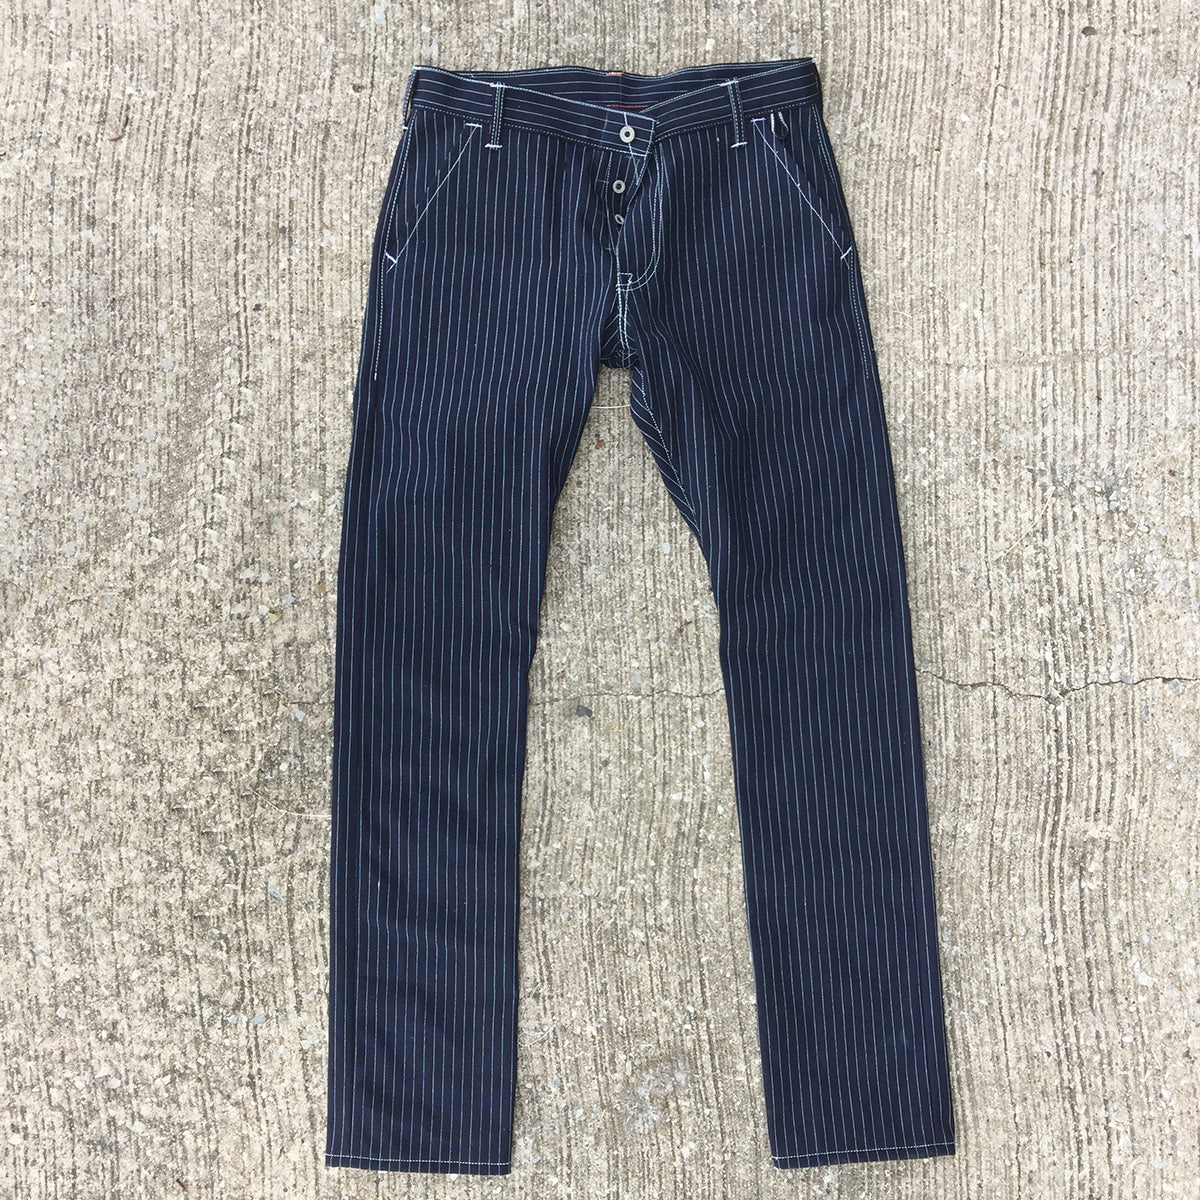 13.5oz Japanese Indigo/Indigo WABASH White Selvage CHINO VERSION